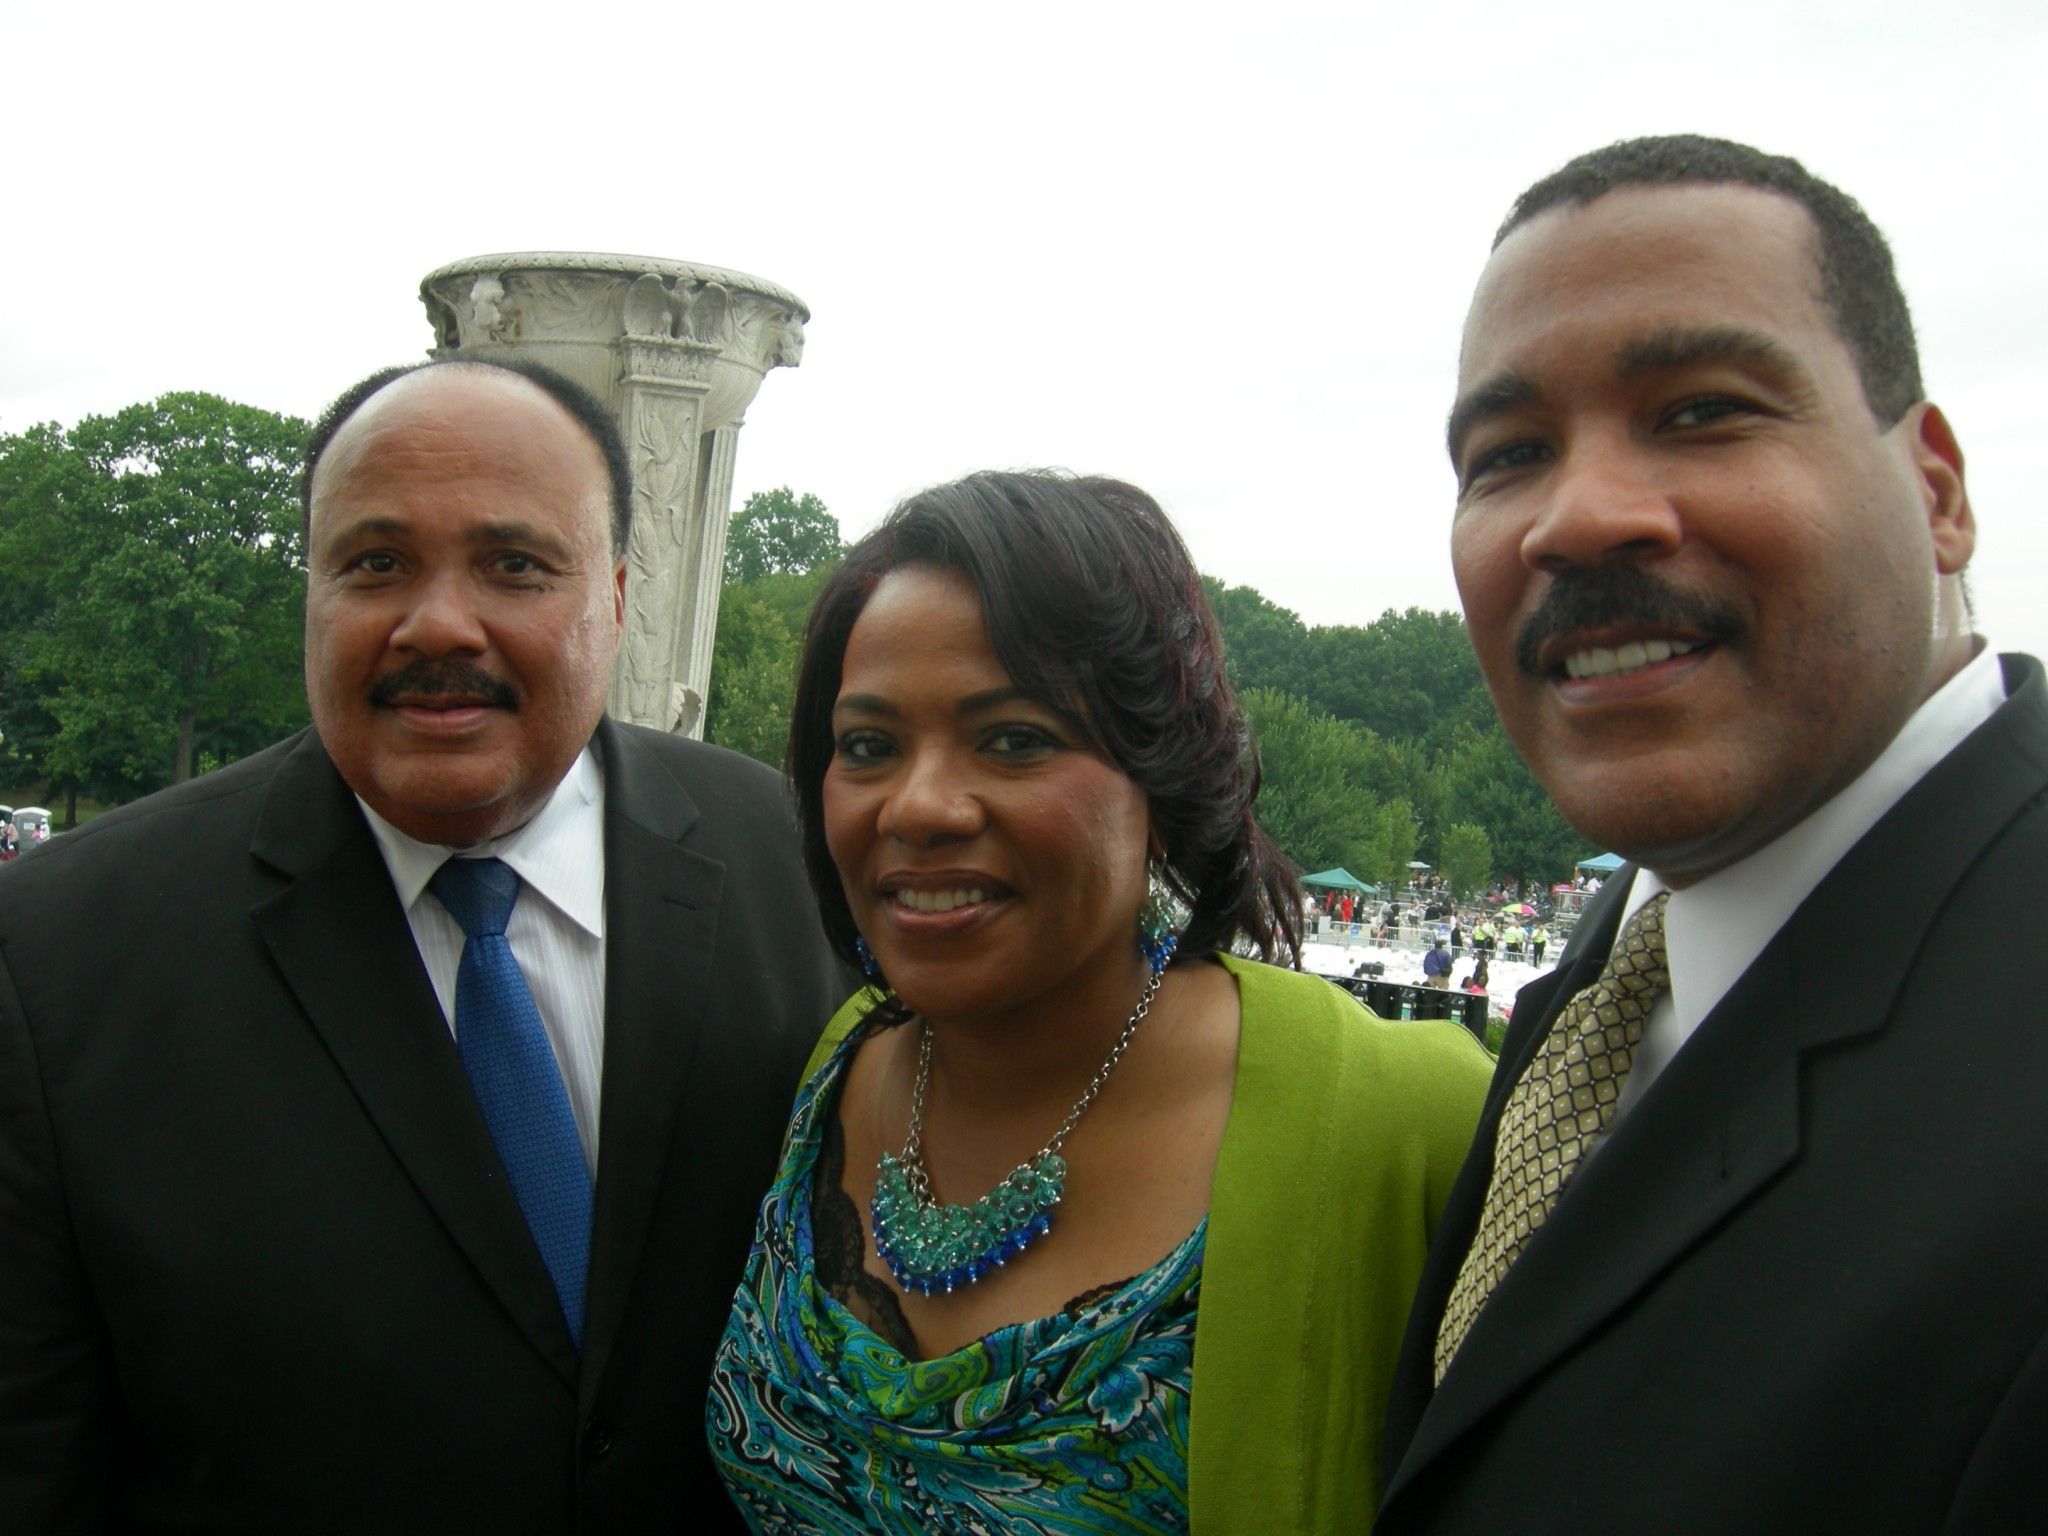 Martin Luther King Iii I M Committed To Getting This Resolved And I Would Hope It Would Not Be In Court Saportareport